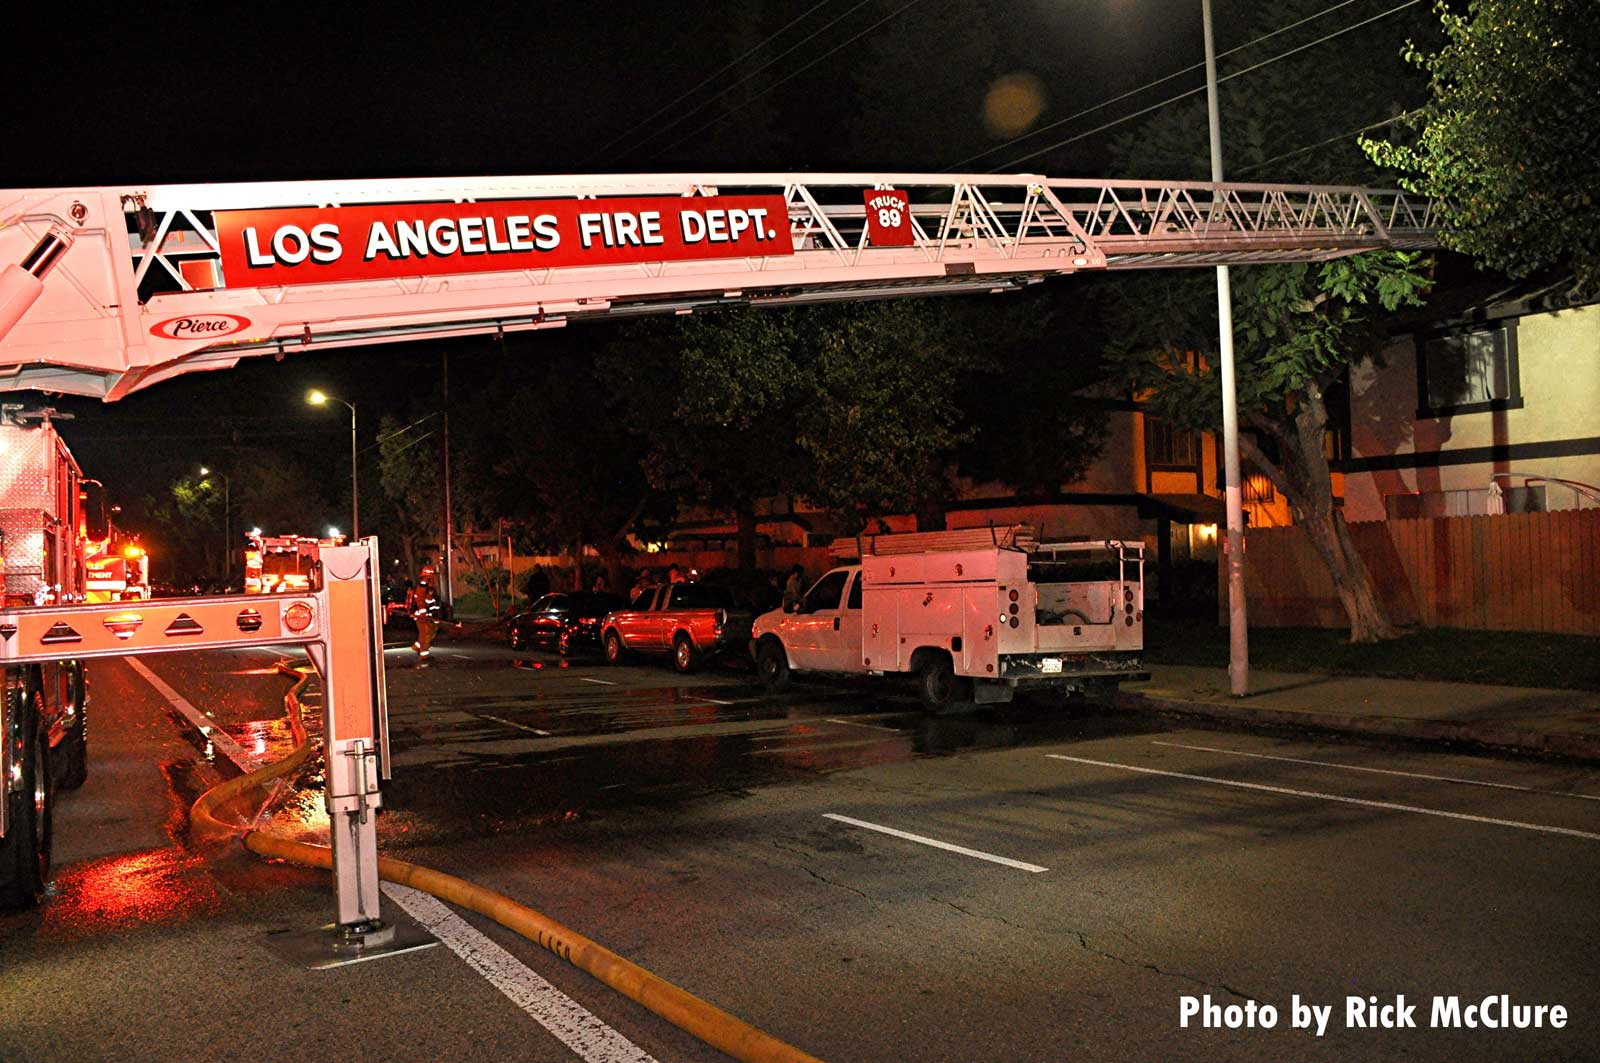 LAFD Truck 89 ladder extended